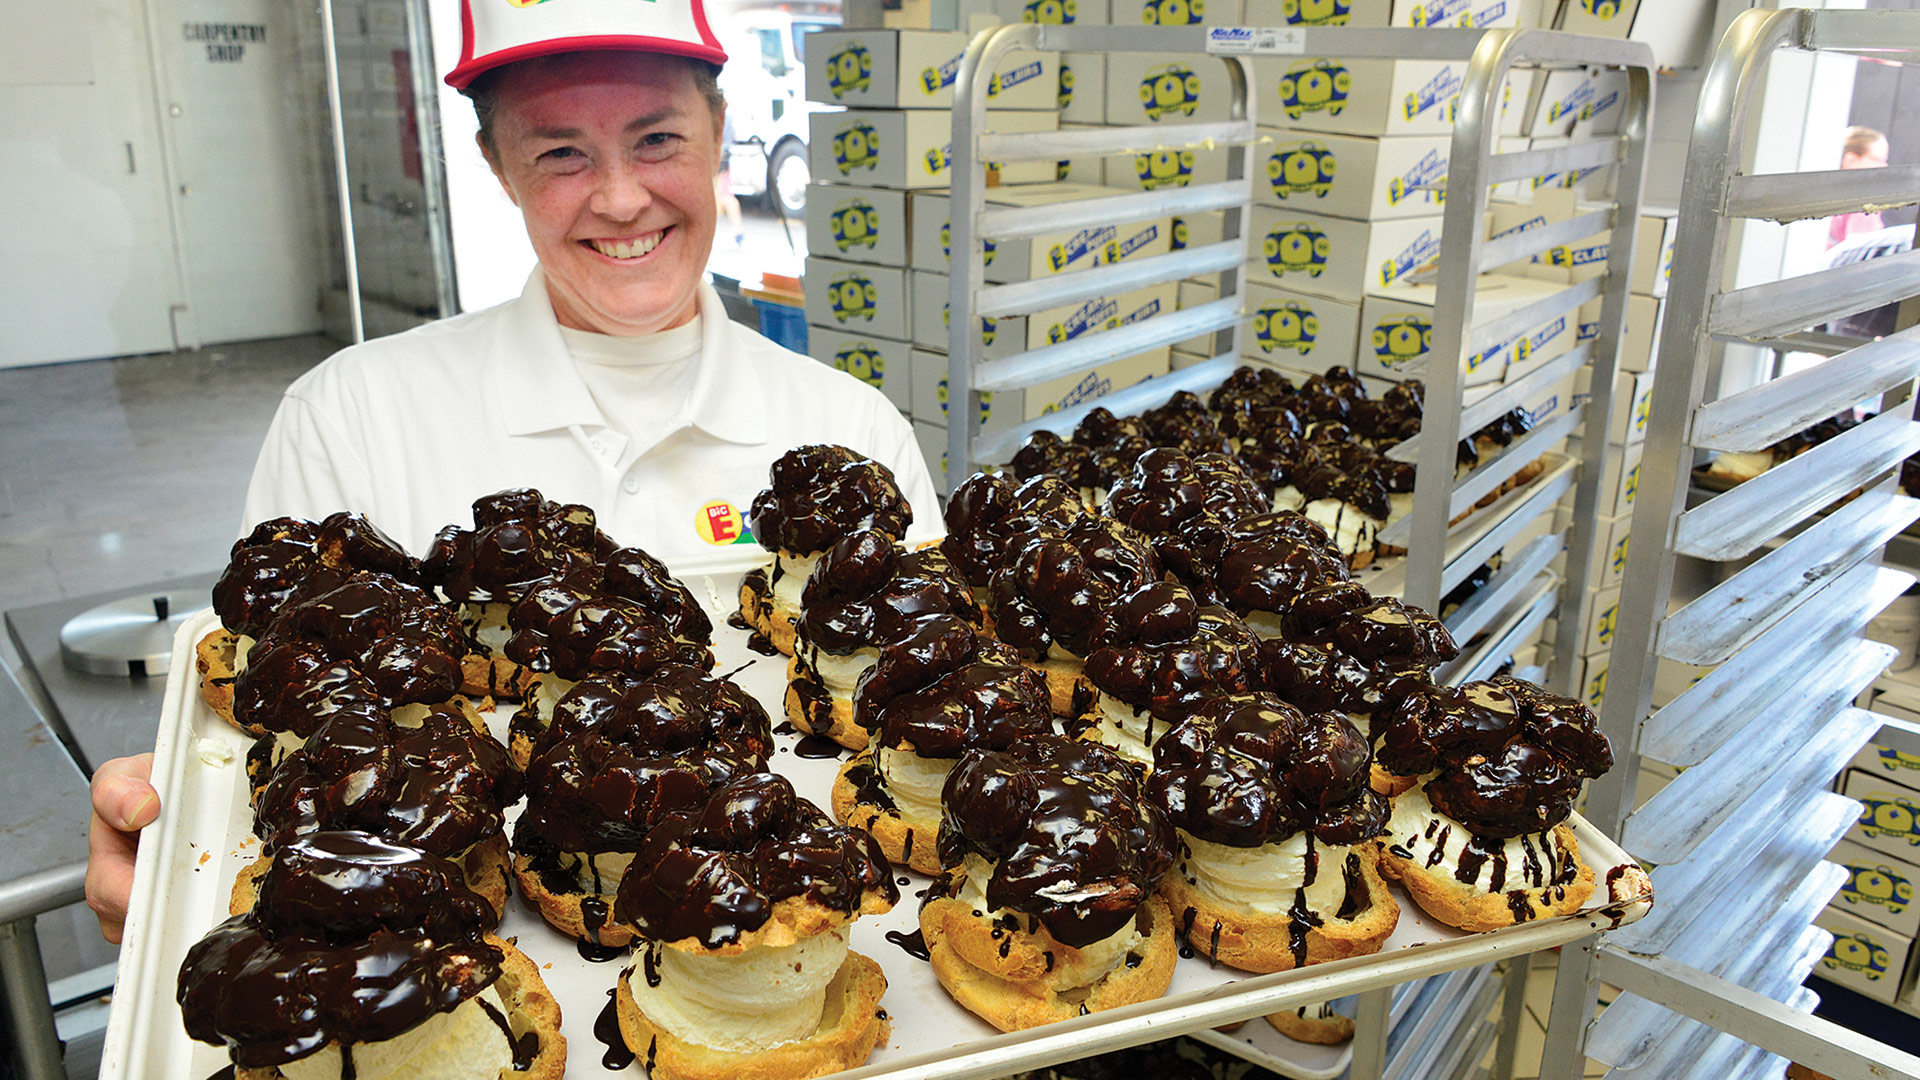 It's been a very long 18 months for the vendors who work the Big E